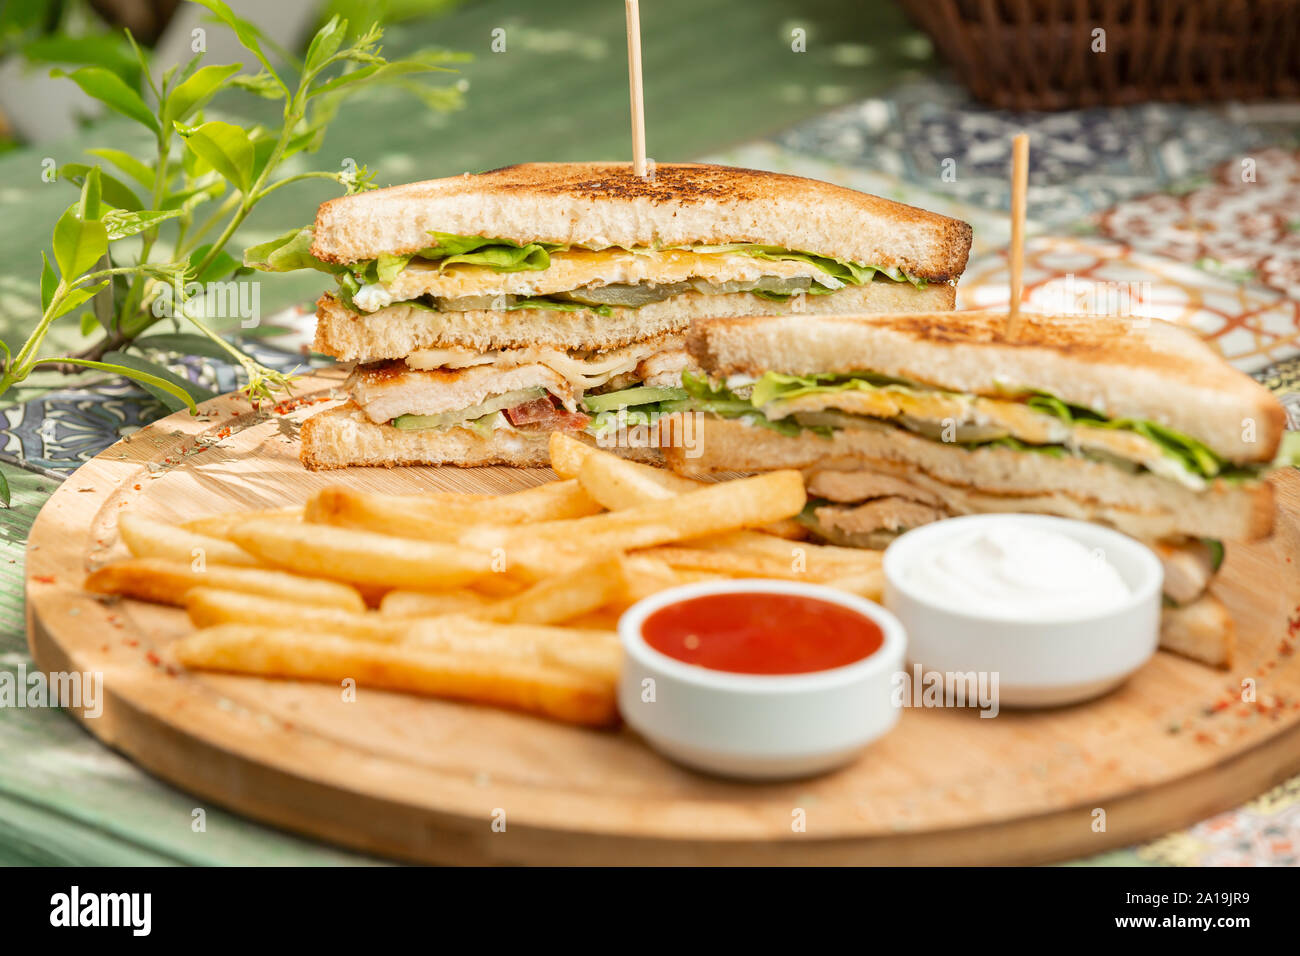 Classic chicken club sendwich with french fries Stock Photo